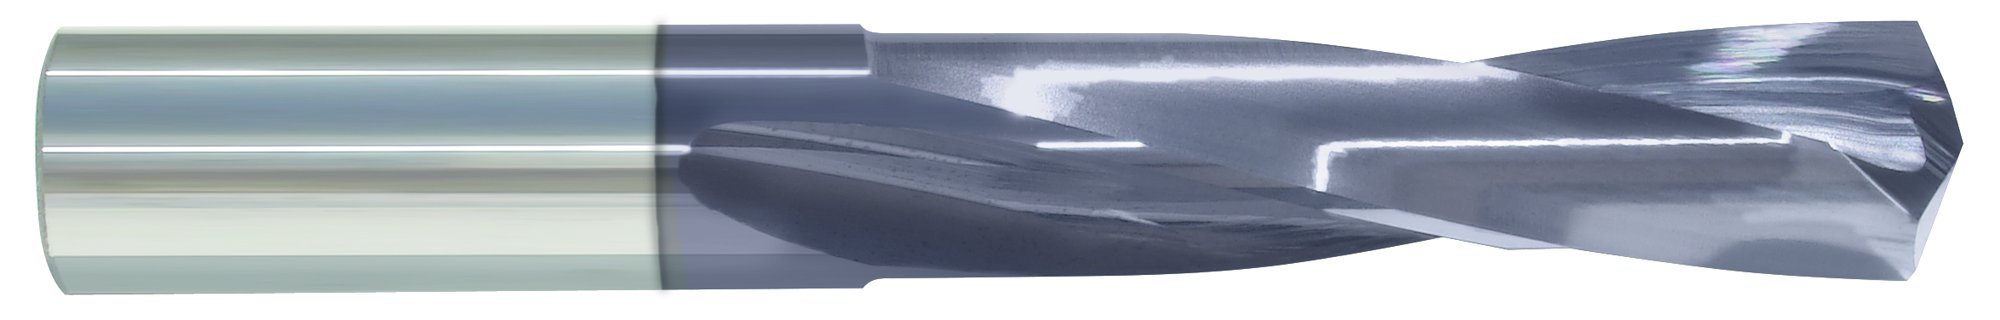 Morse Cutting Tools 92278 Screw Machine Length Drill Bits, Solid Carbide, TiALN Finish, 135 degree Point, 11/64'' Size